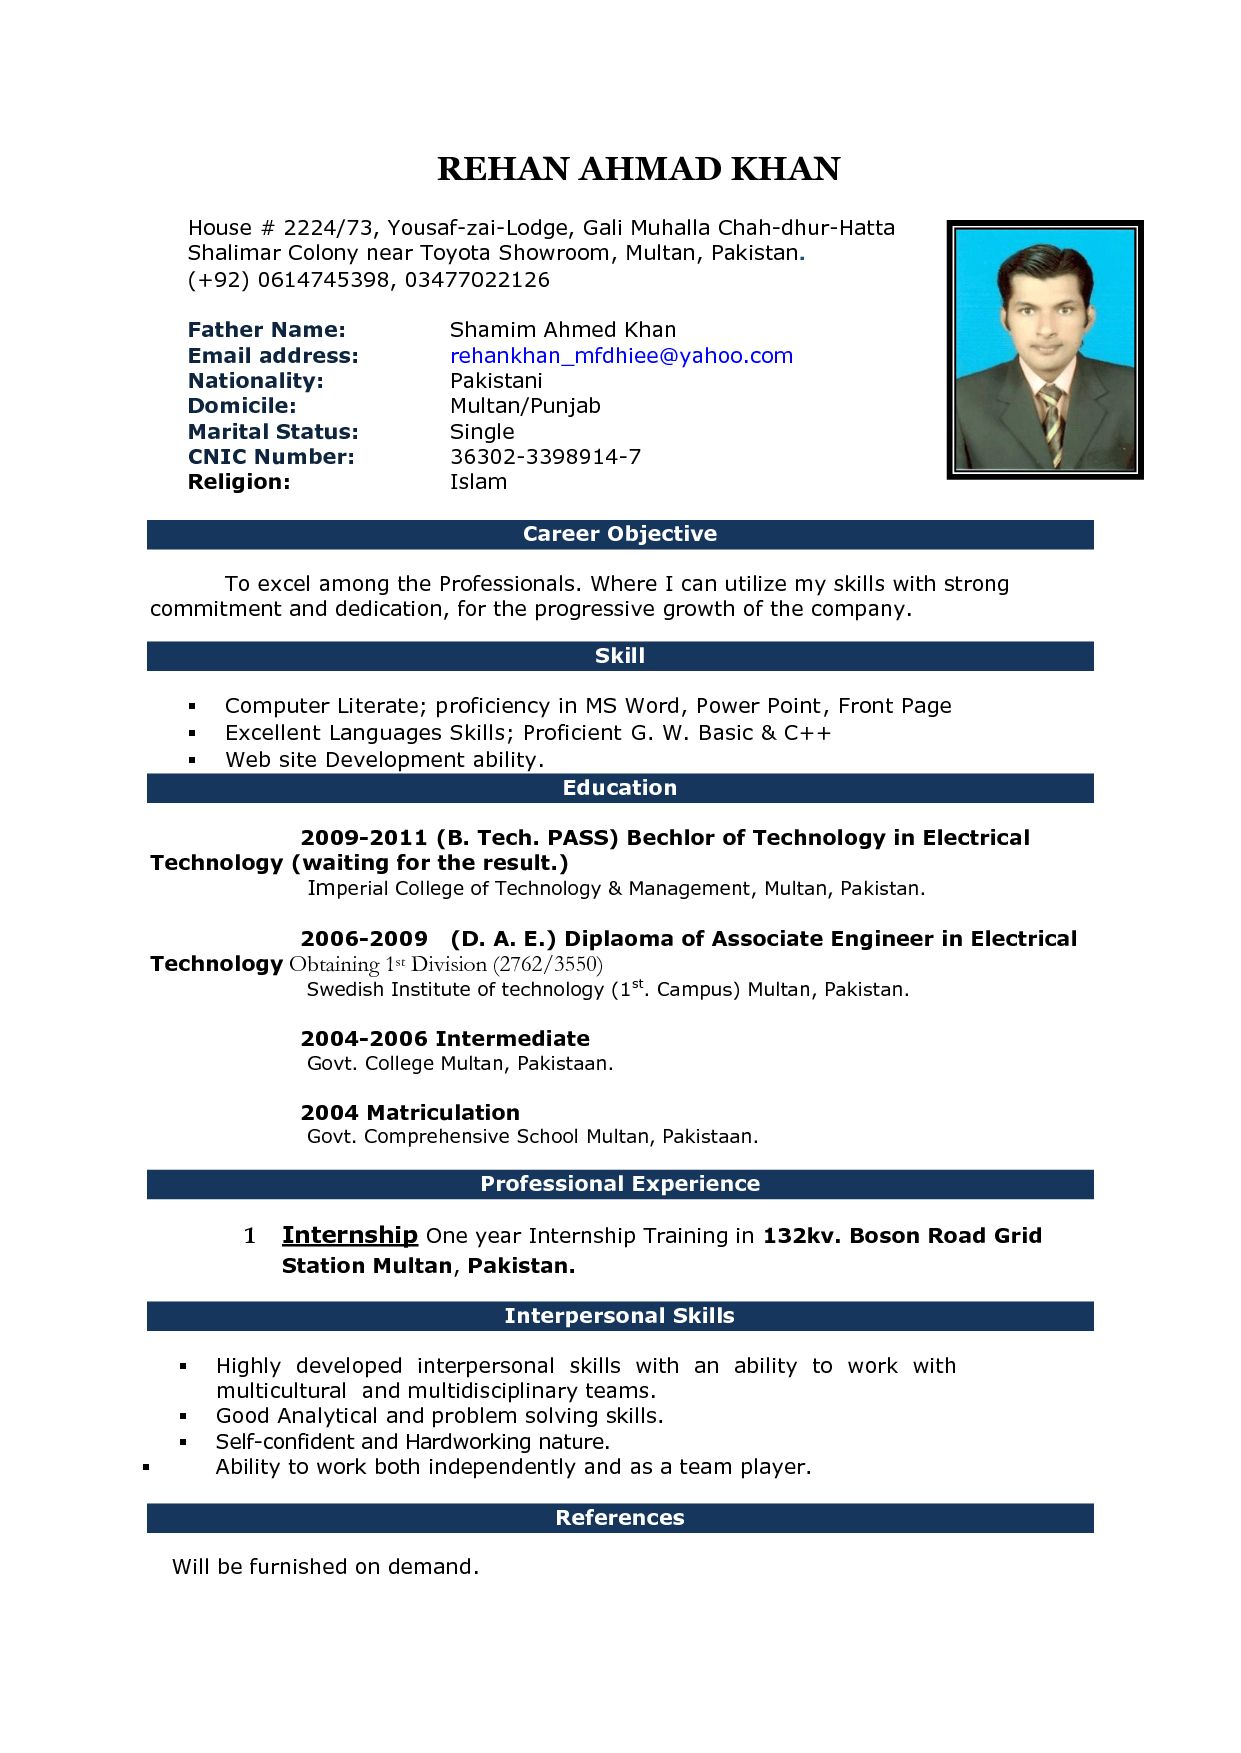 Free Download Cv Format In Ms Word Fieldstationco Microsoft Office Resume Templates